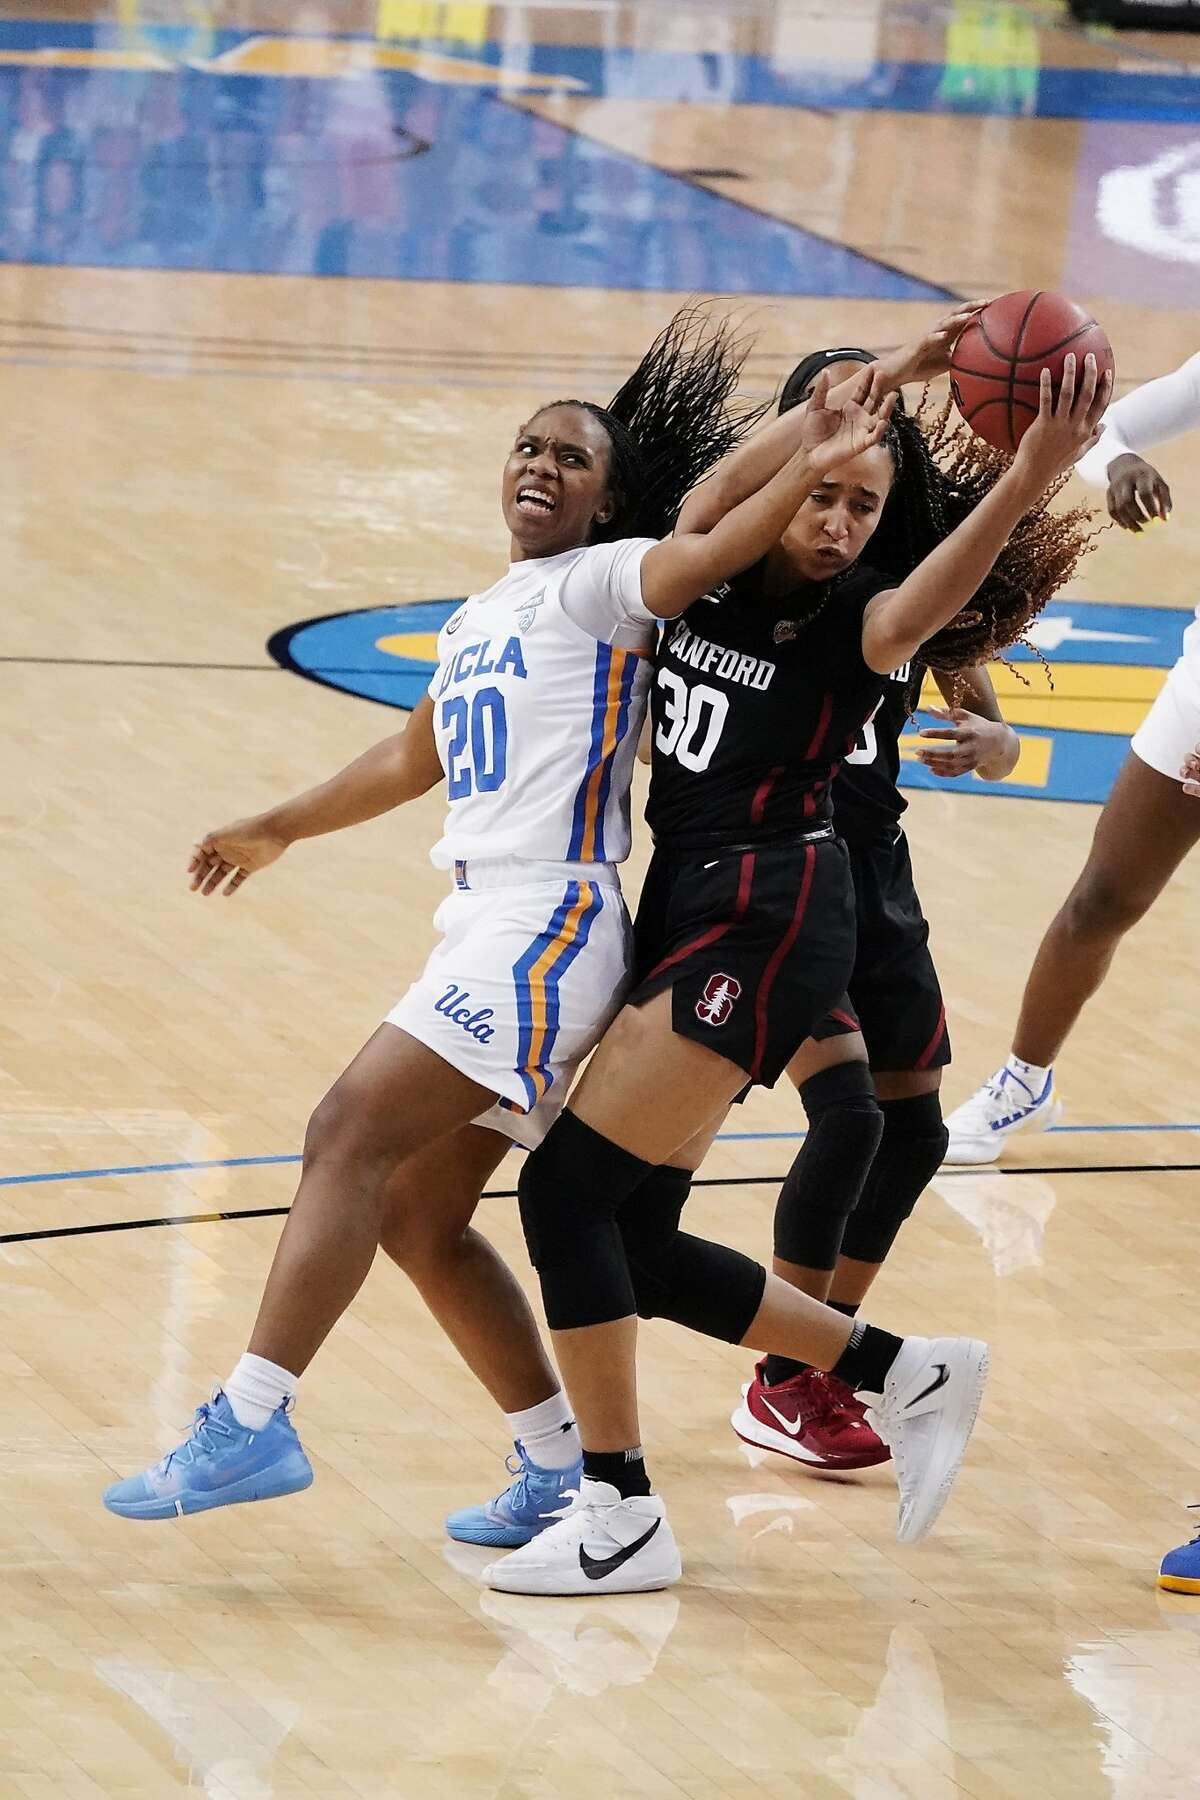 Stanford guard Haley Jones (30) works for the ball against UCLA guard Charisma Osborne (20) during the second half of an NCAA college basketball game Monday, Dec. 21, 2020, in Los Angeles. (AP Photo/Marcio Jose Sanchez)